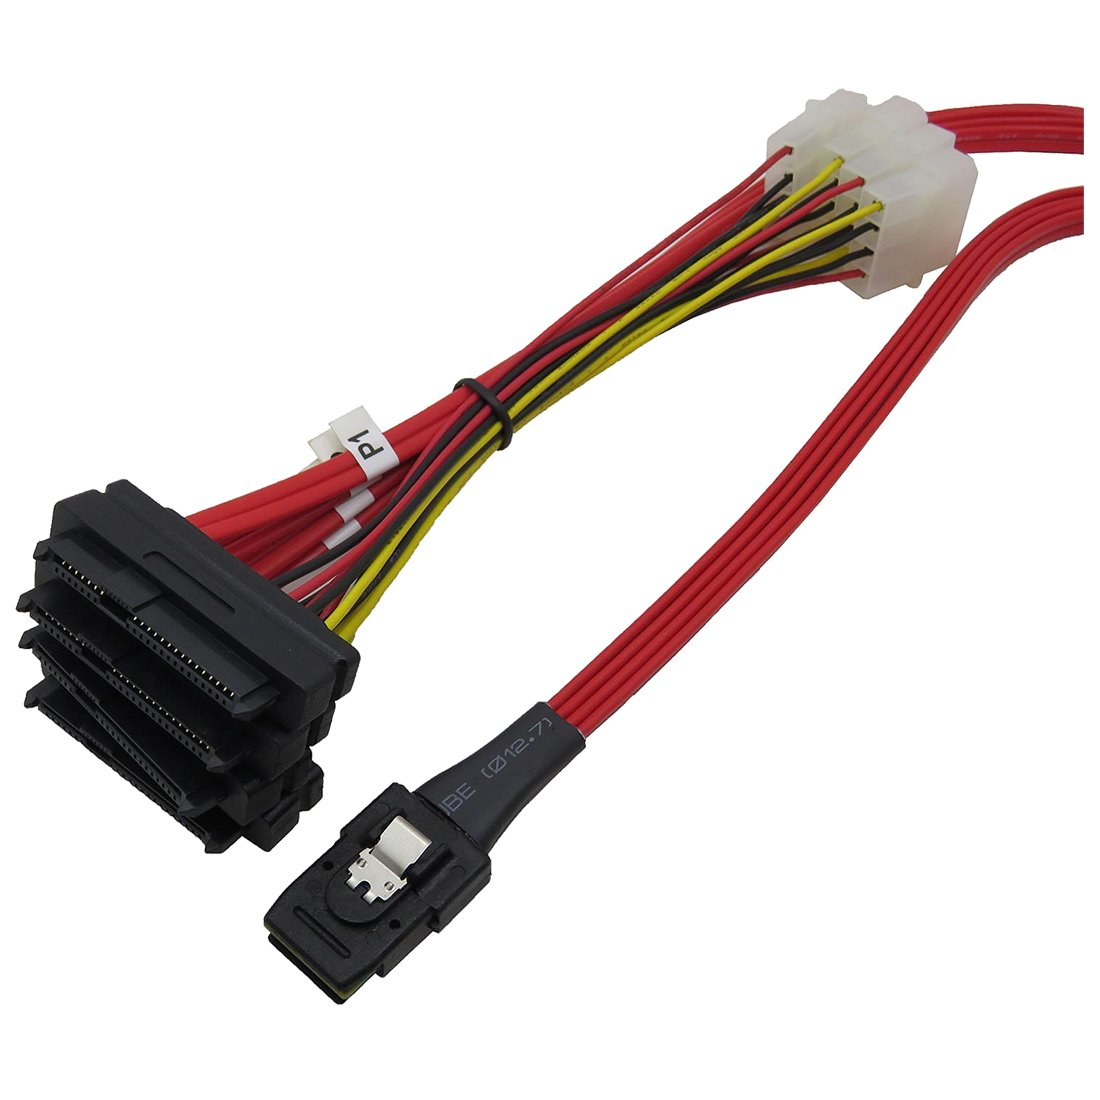 TOOGOO(R) Mini SAS 36P SFF8087 to 4 X SFF 8482 29P SAS with Power Red Cable 1M